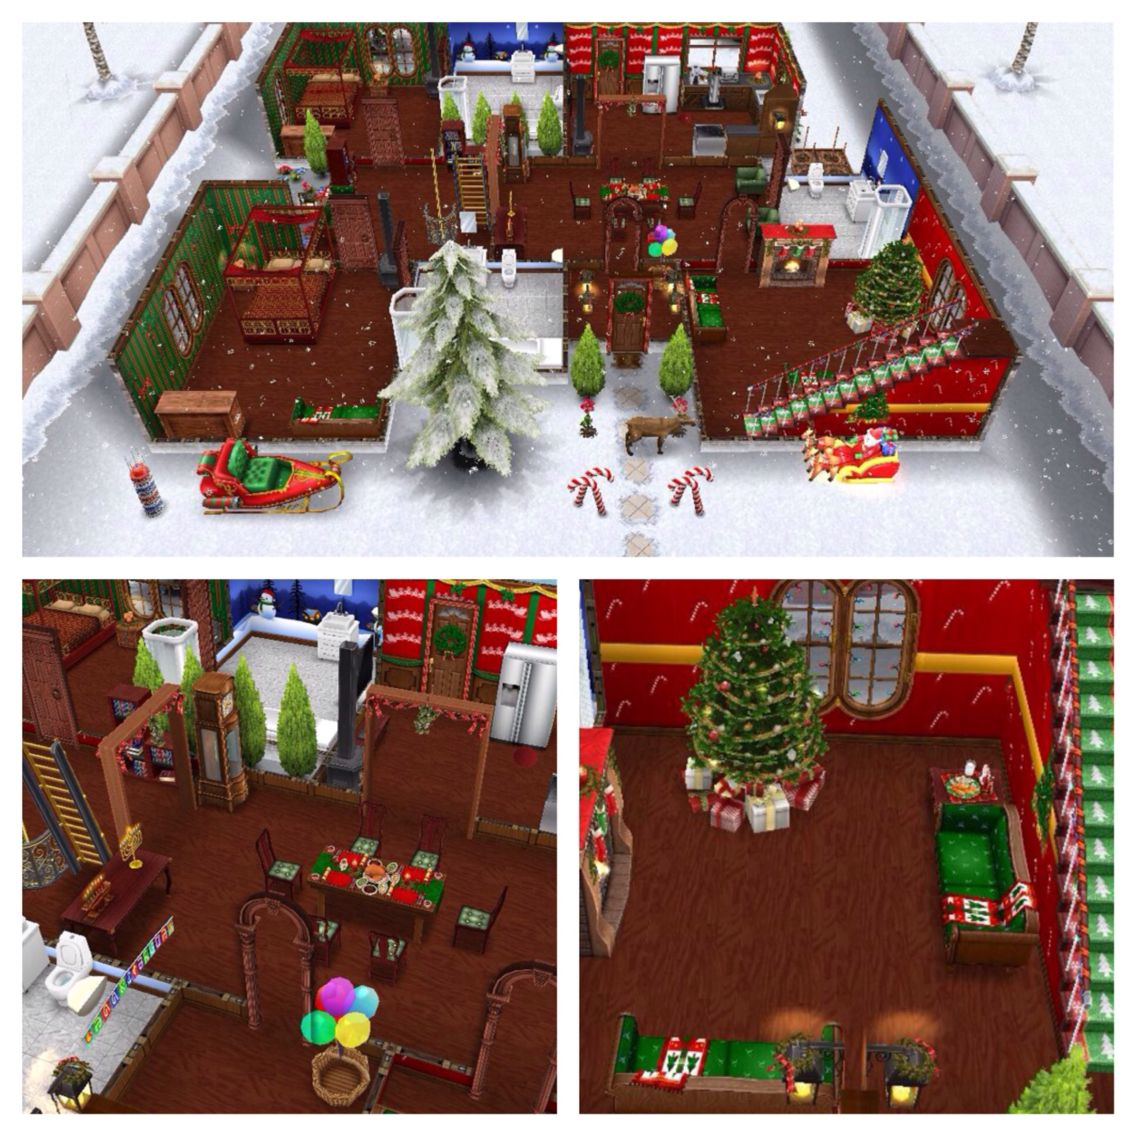 Christmas sims freeplay original house design floor 1 for Casa de diseno sims freeplay